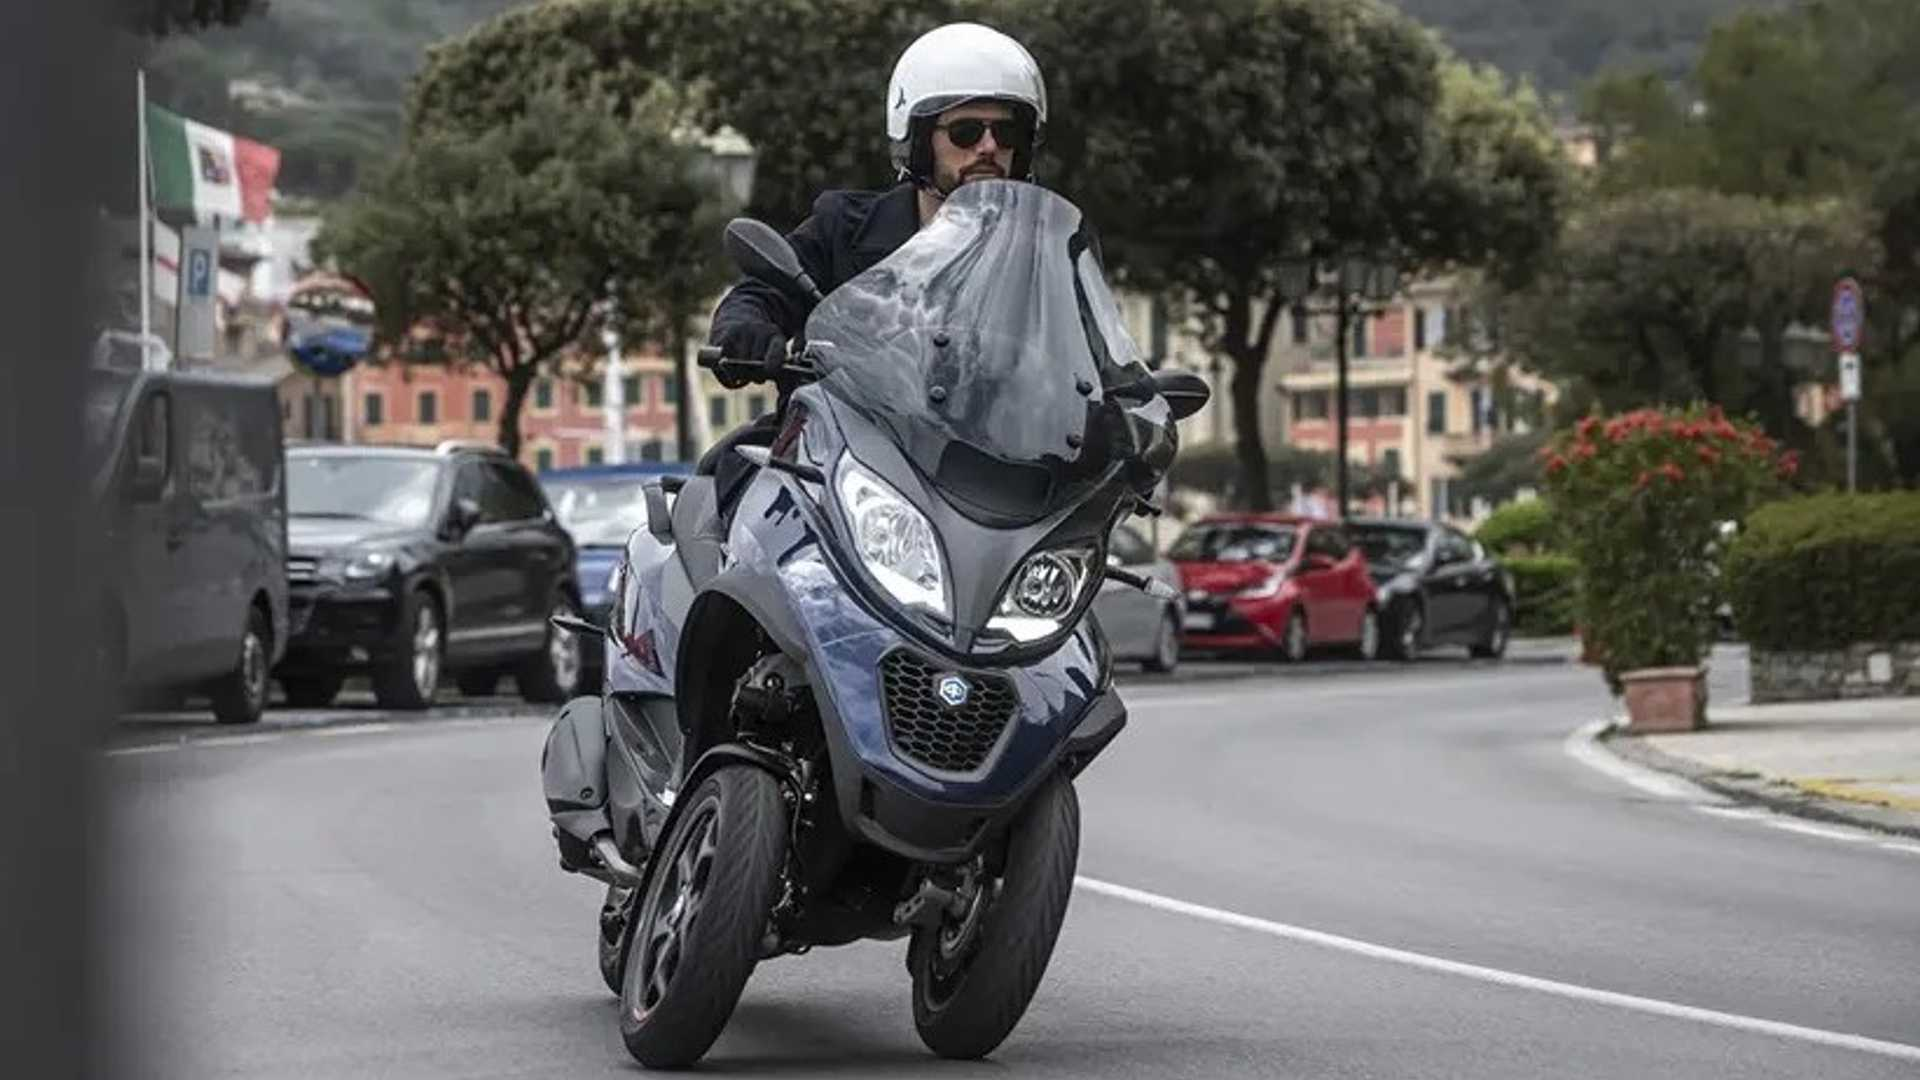 Piaggio Wins Two Infringement Lawsuits Against Peugeot Motorcycles